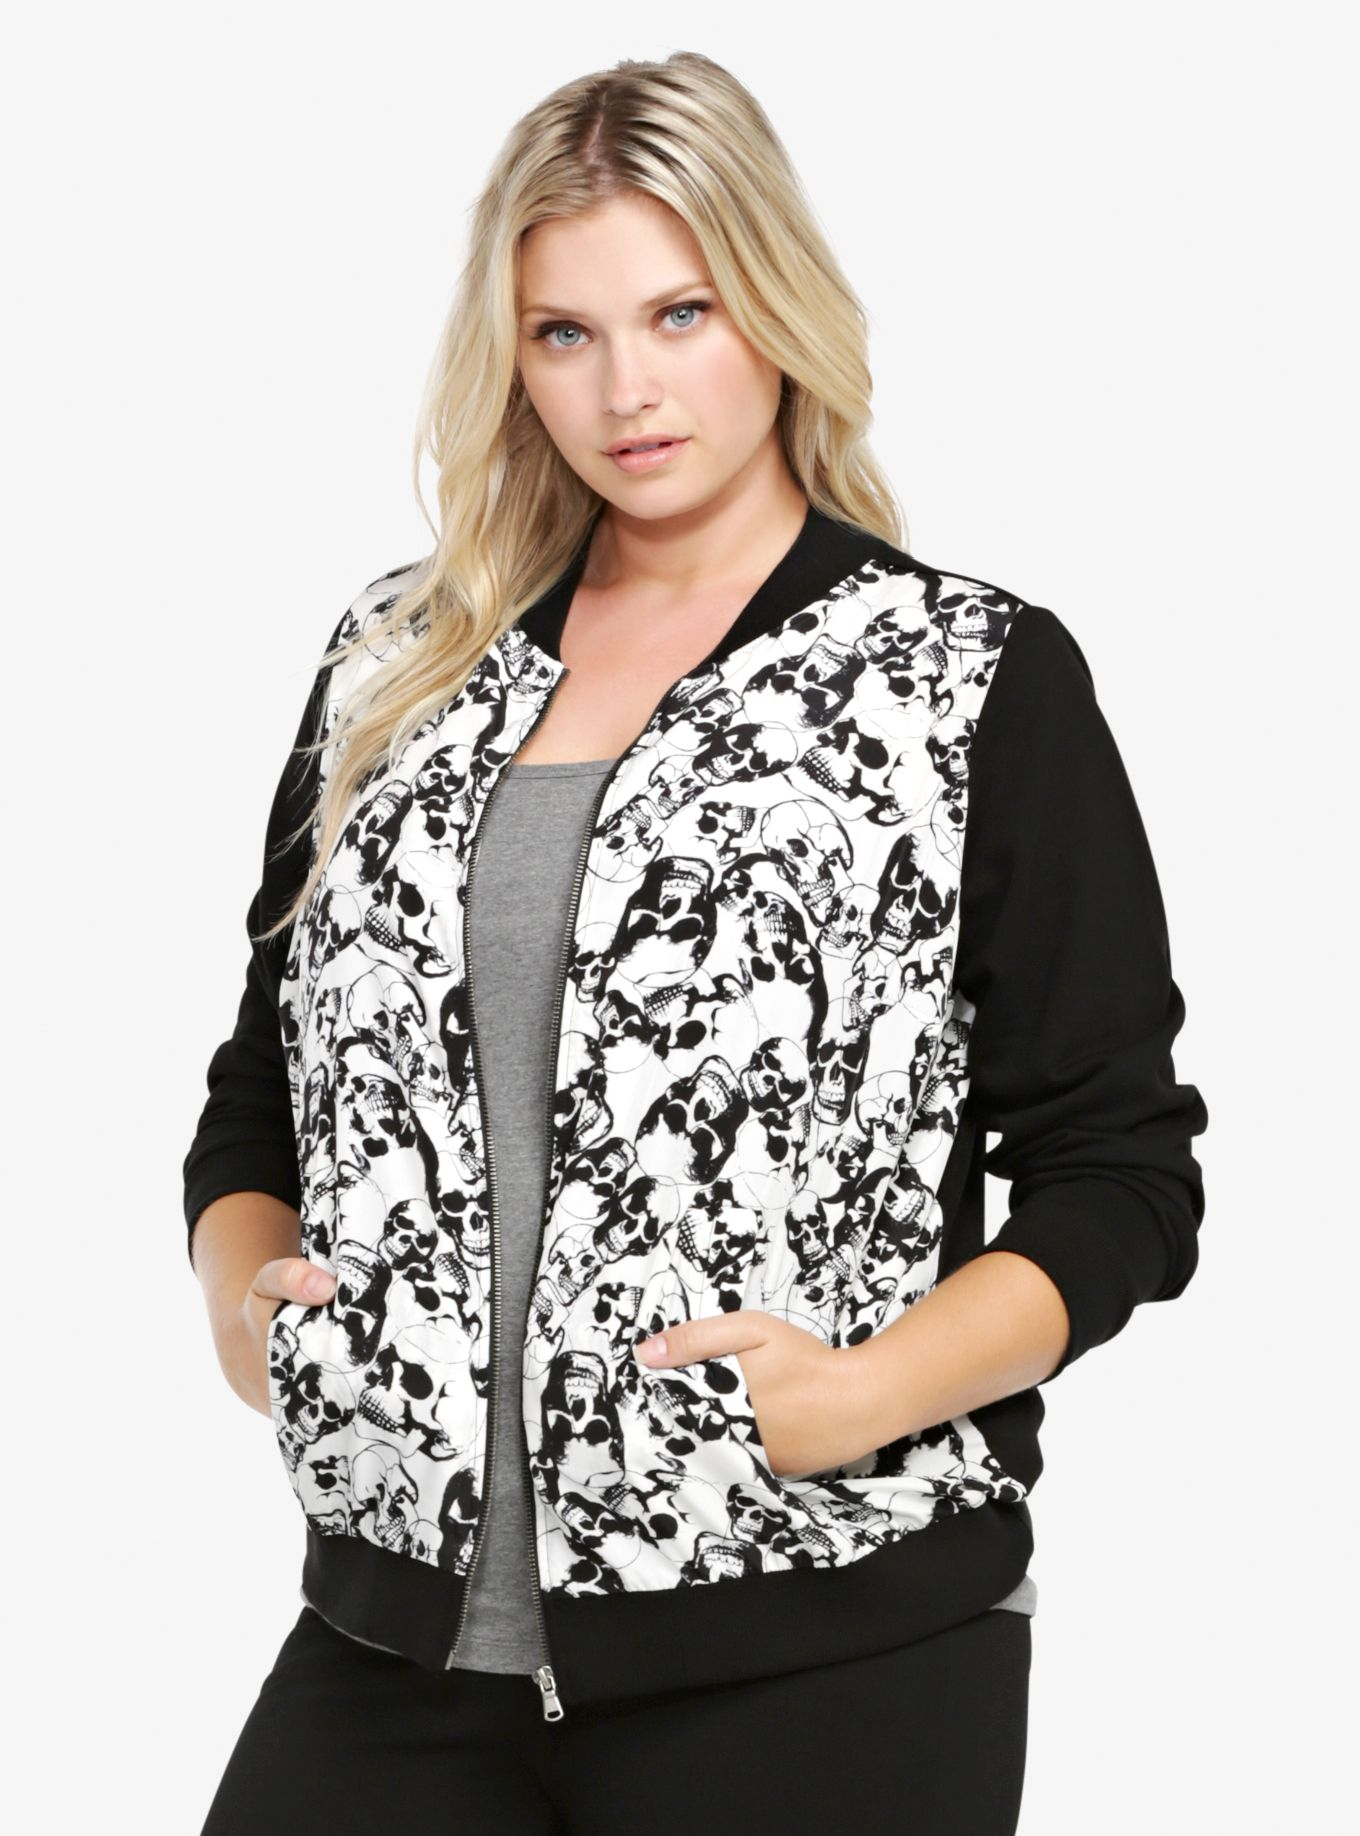 dddae3747c6 ... plus size clothing   lingerie at Torrid. Now that s a Bomber Jacket!